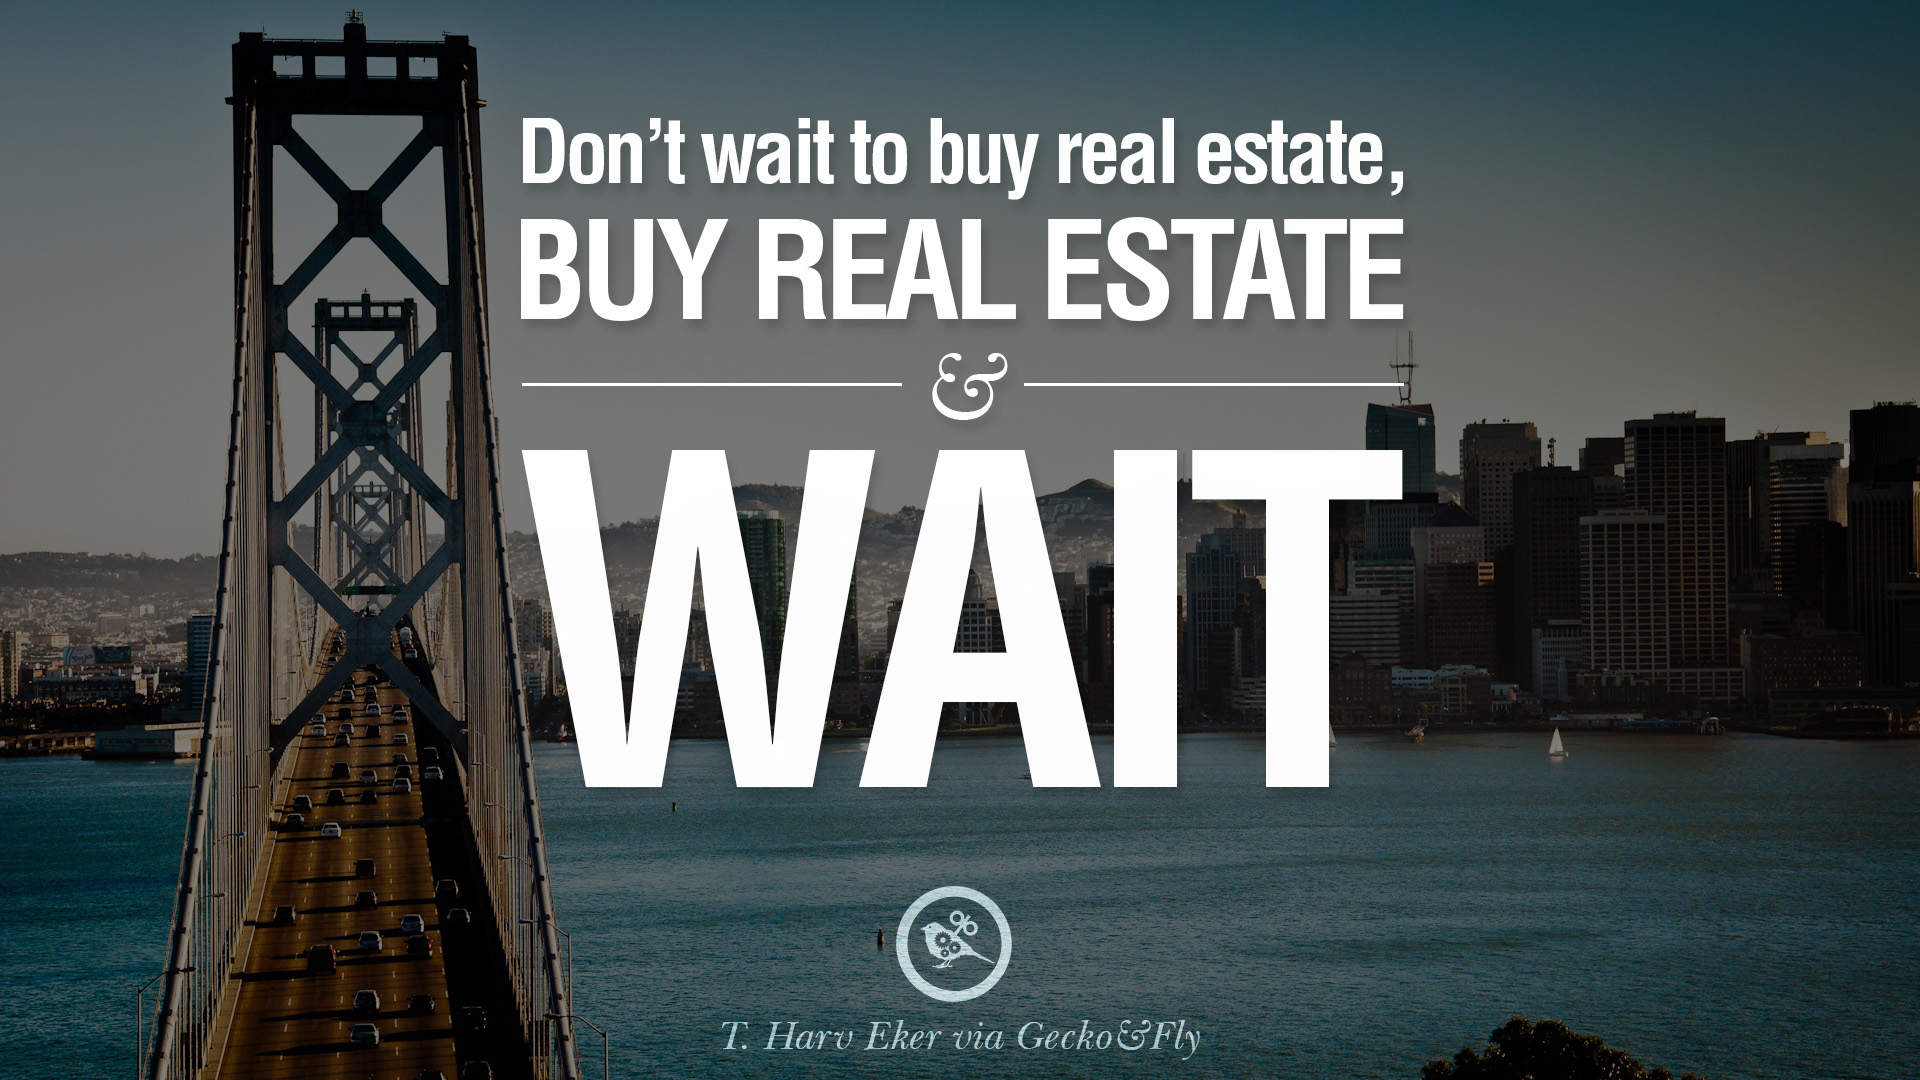 Quotes about Real estate investing (40 quotes)